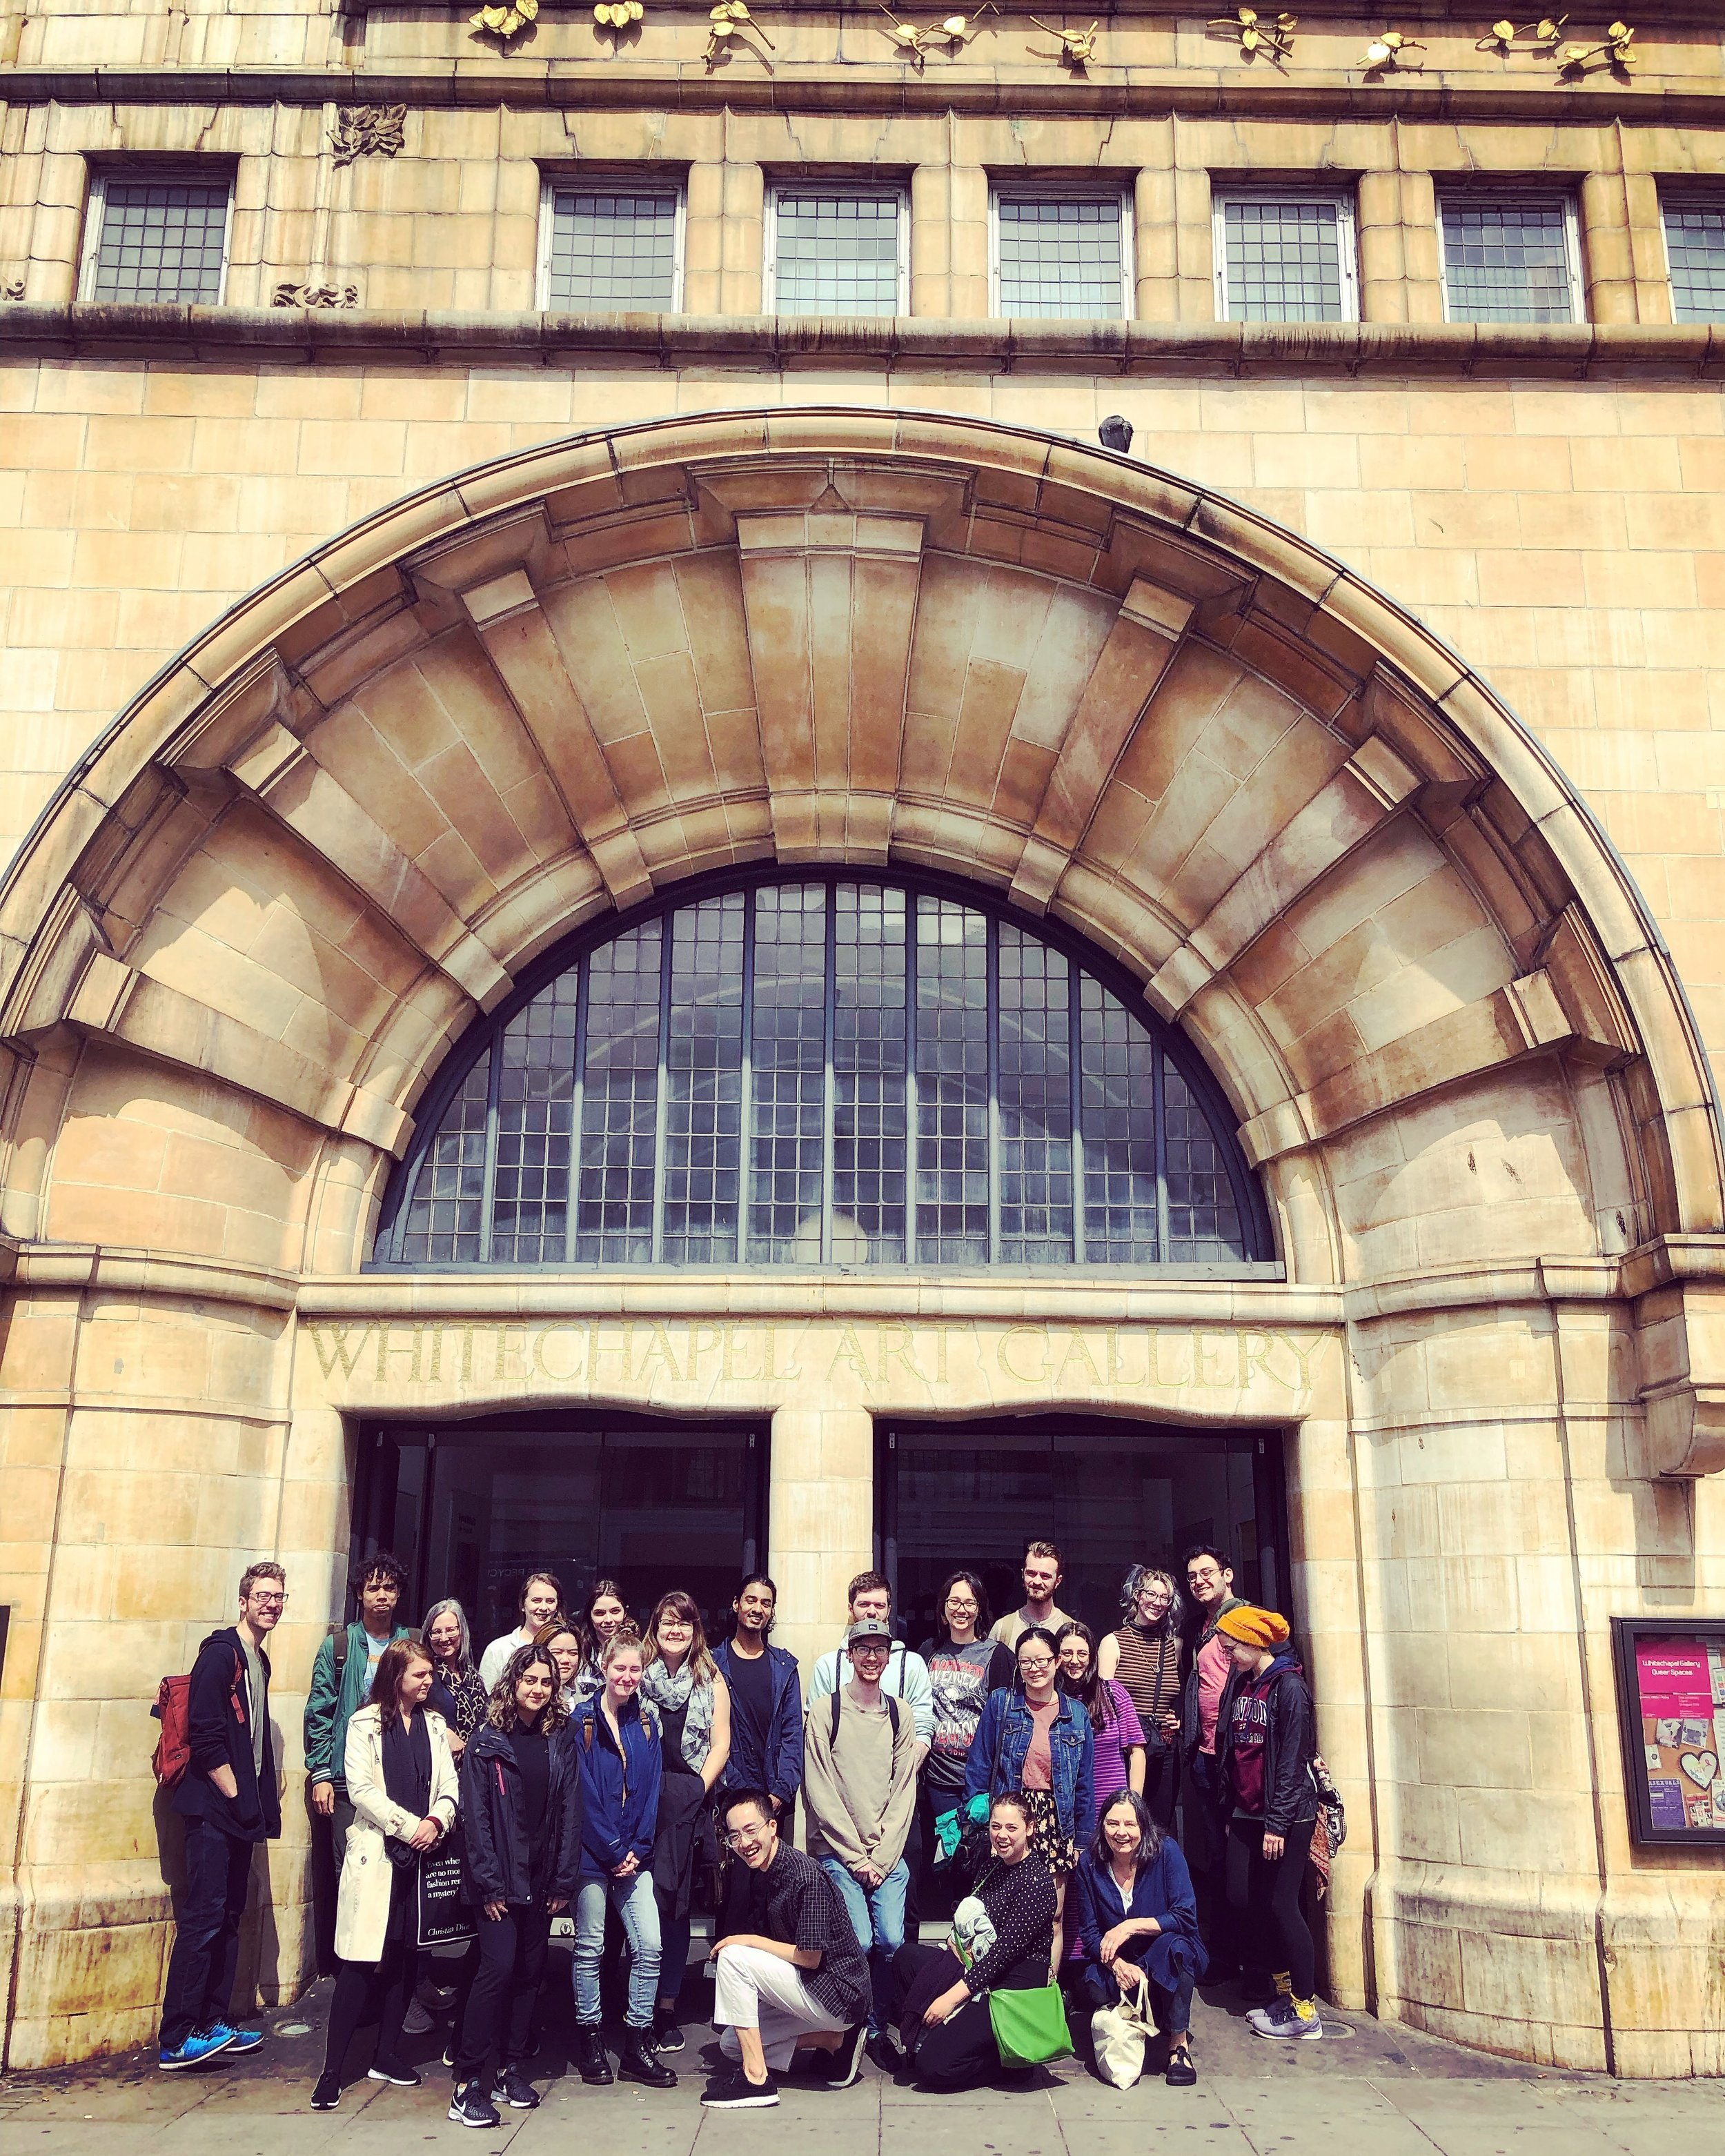 Anglea, pictured fourth from the left, with the group at the famed Whitechapel Gallery— an art space dedicated to the exhibition of the latest in cutting edge, non-traditional, and global avant-garde art.